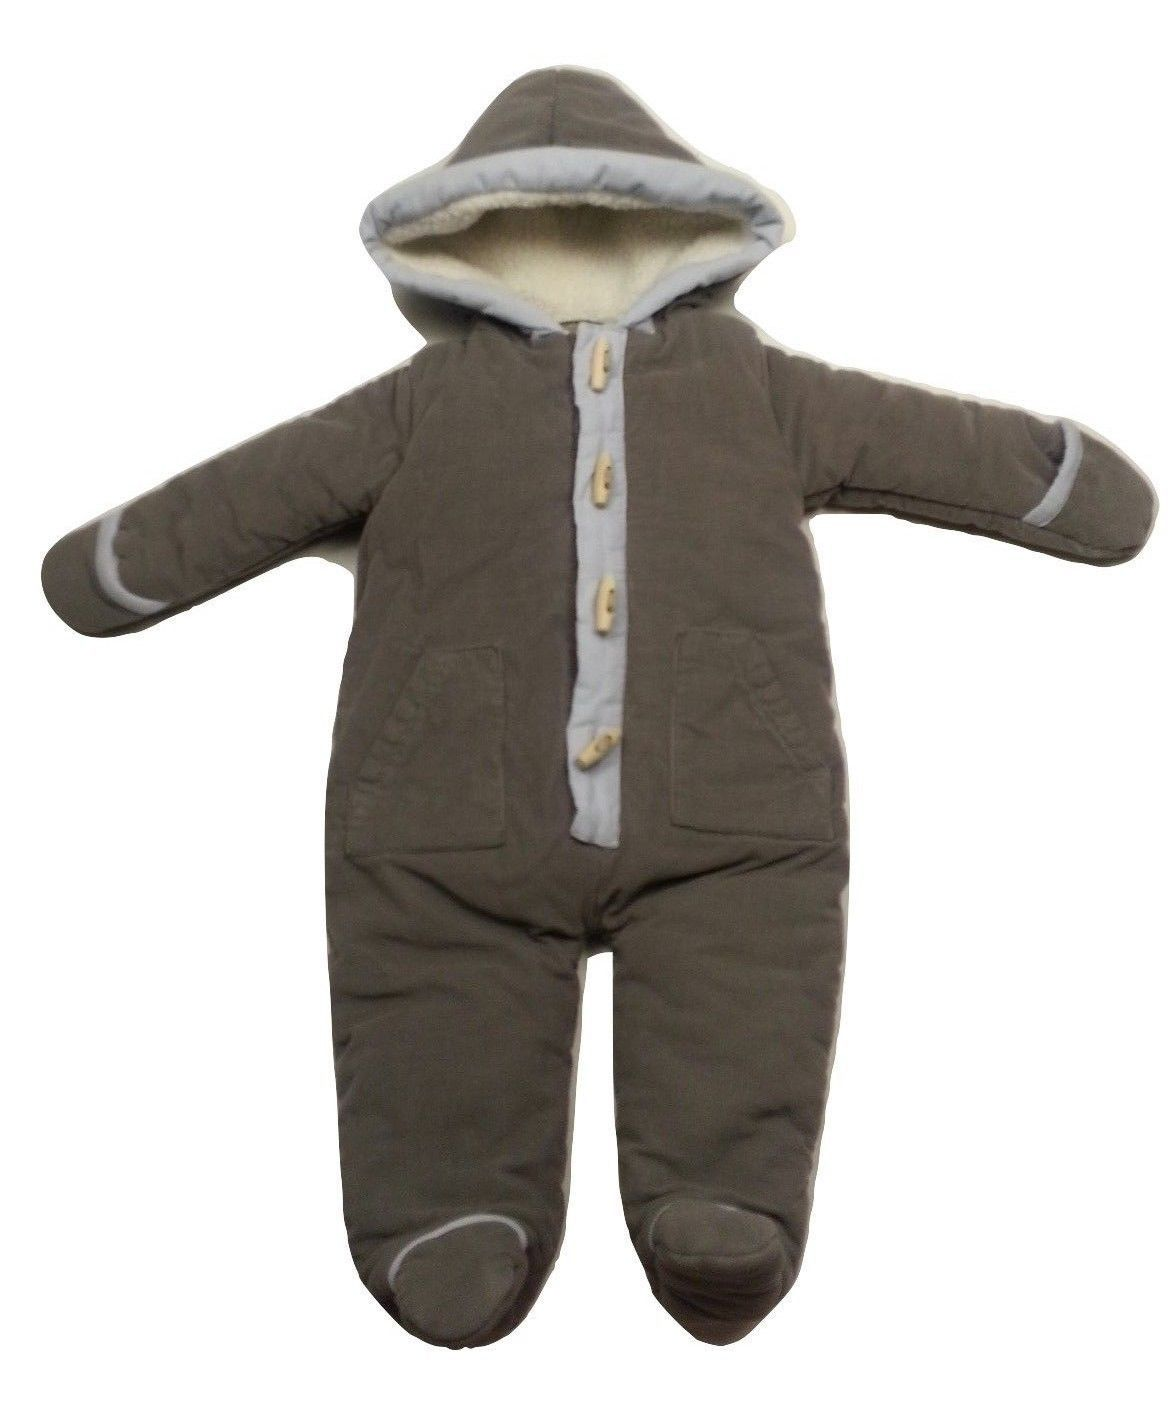 d6099345a Wendy Bellissimo Baby Onepiece Fleece Line and 50 similar items